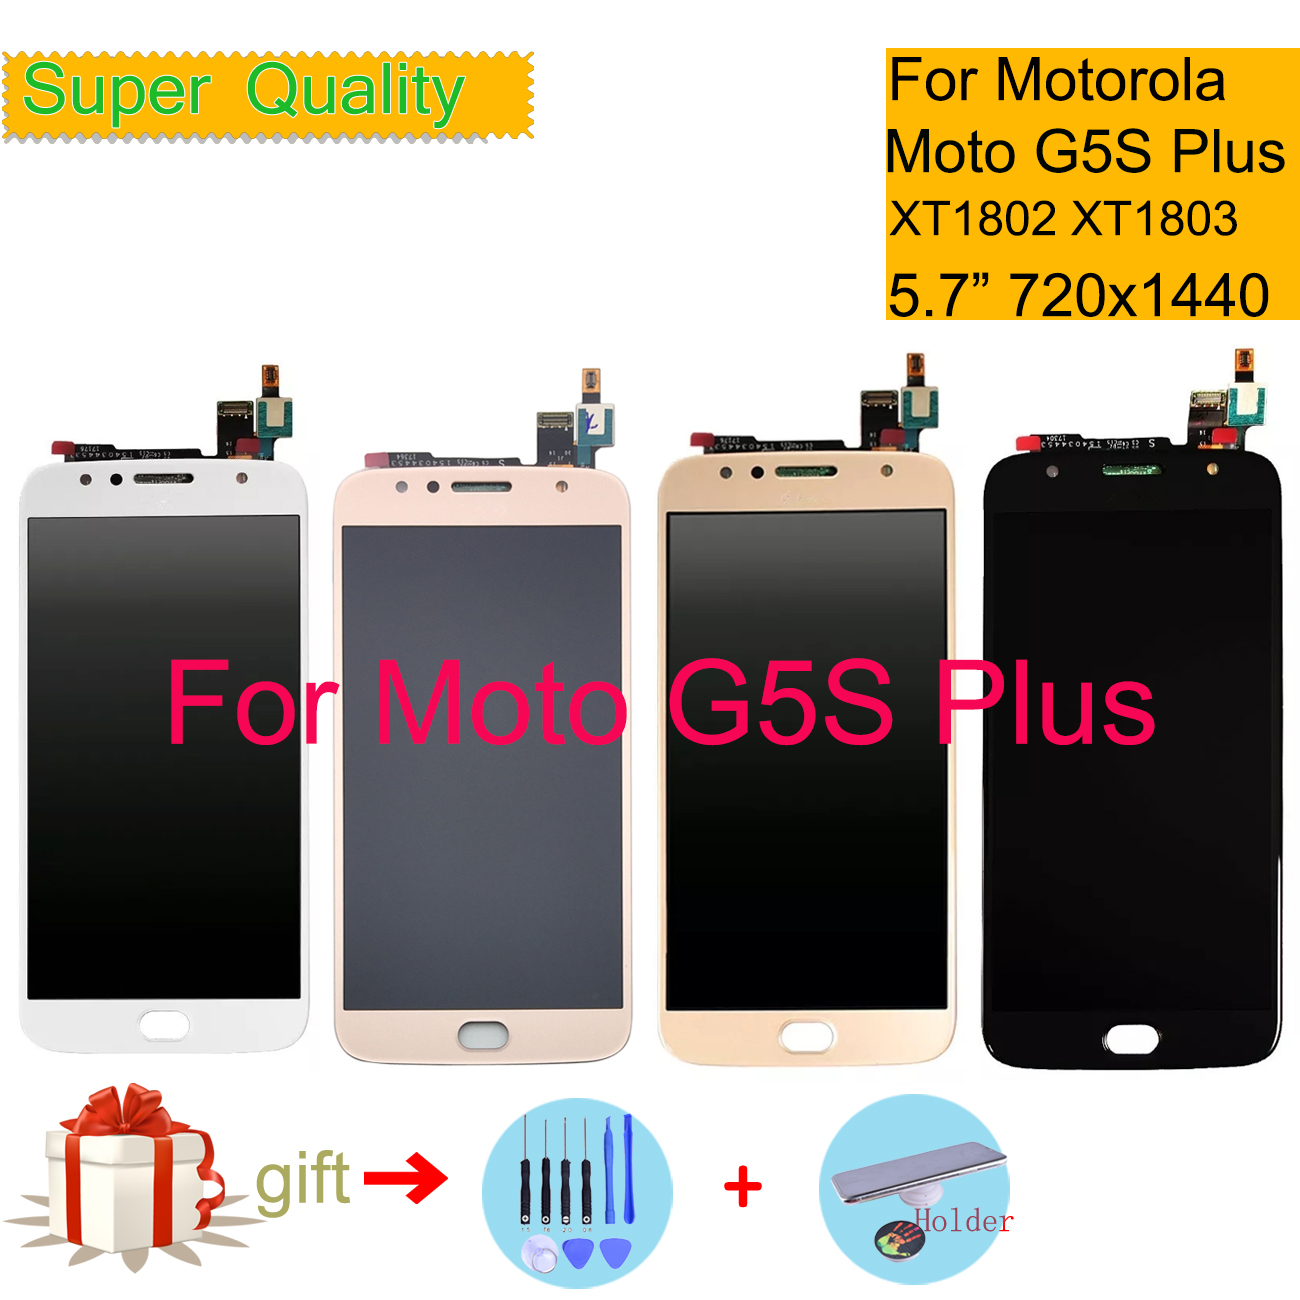 For Motorola Moto G5S Plus LCD Display Touch Screen Digitizer Sensor Complete LCD Assembly XT1802 XT1803 XT1805 XT1086 Monitor